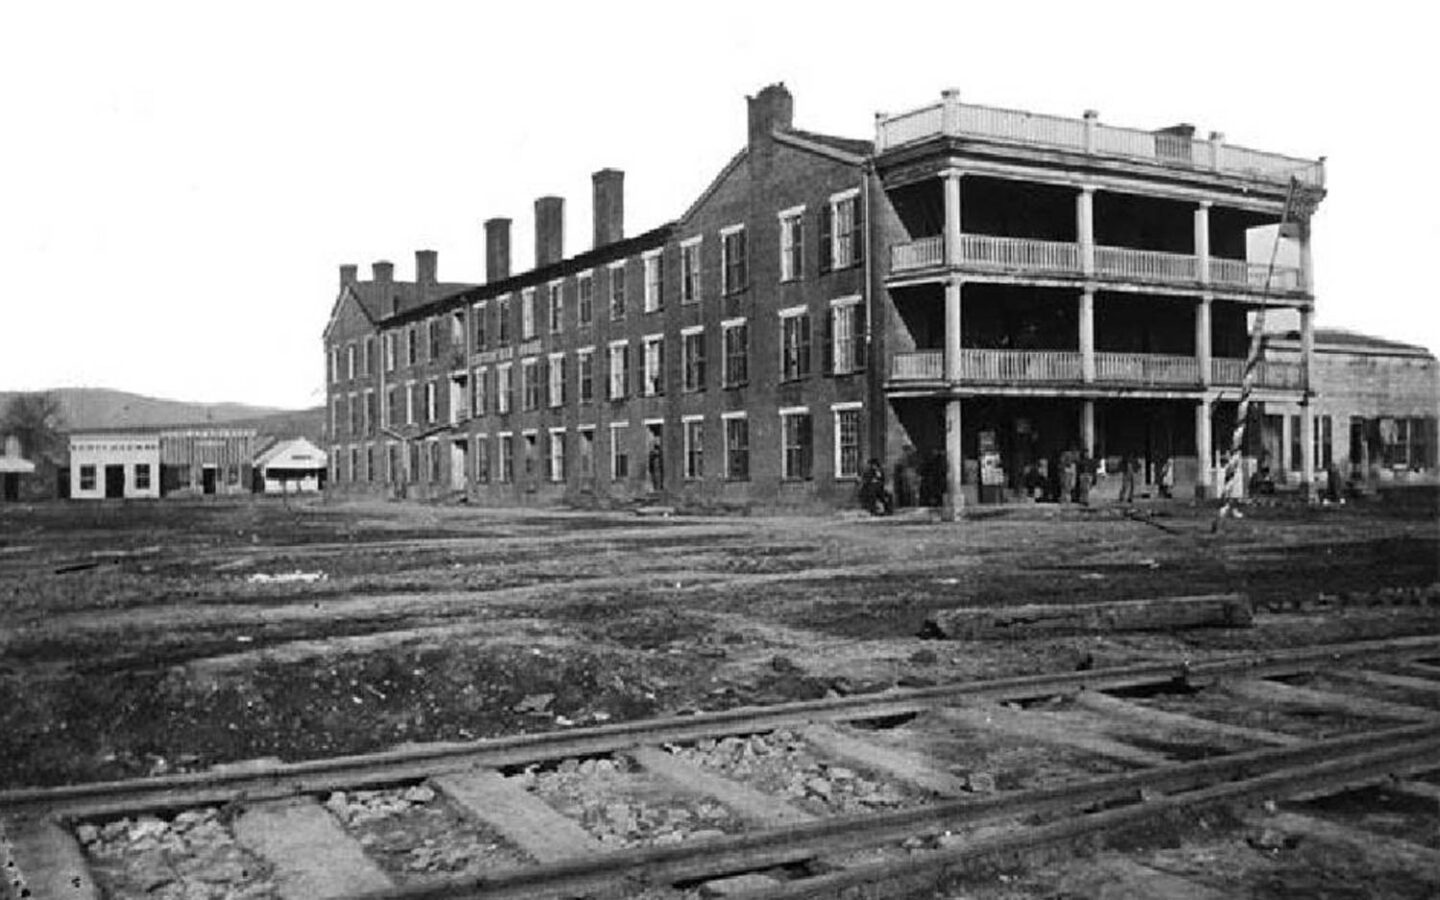 historical black and white photo of a building on dirt land next to a train track